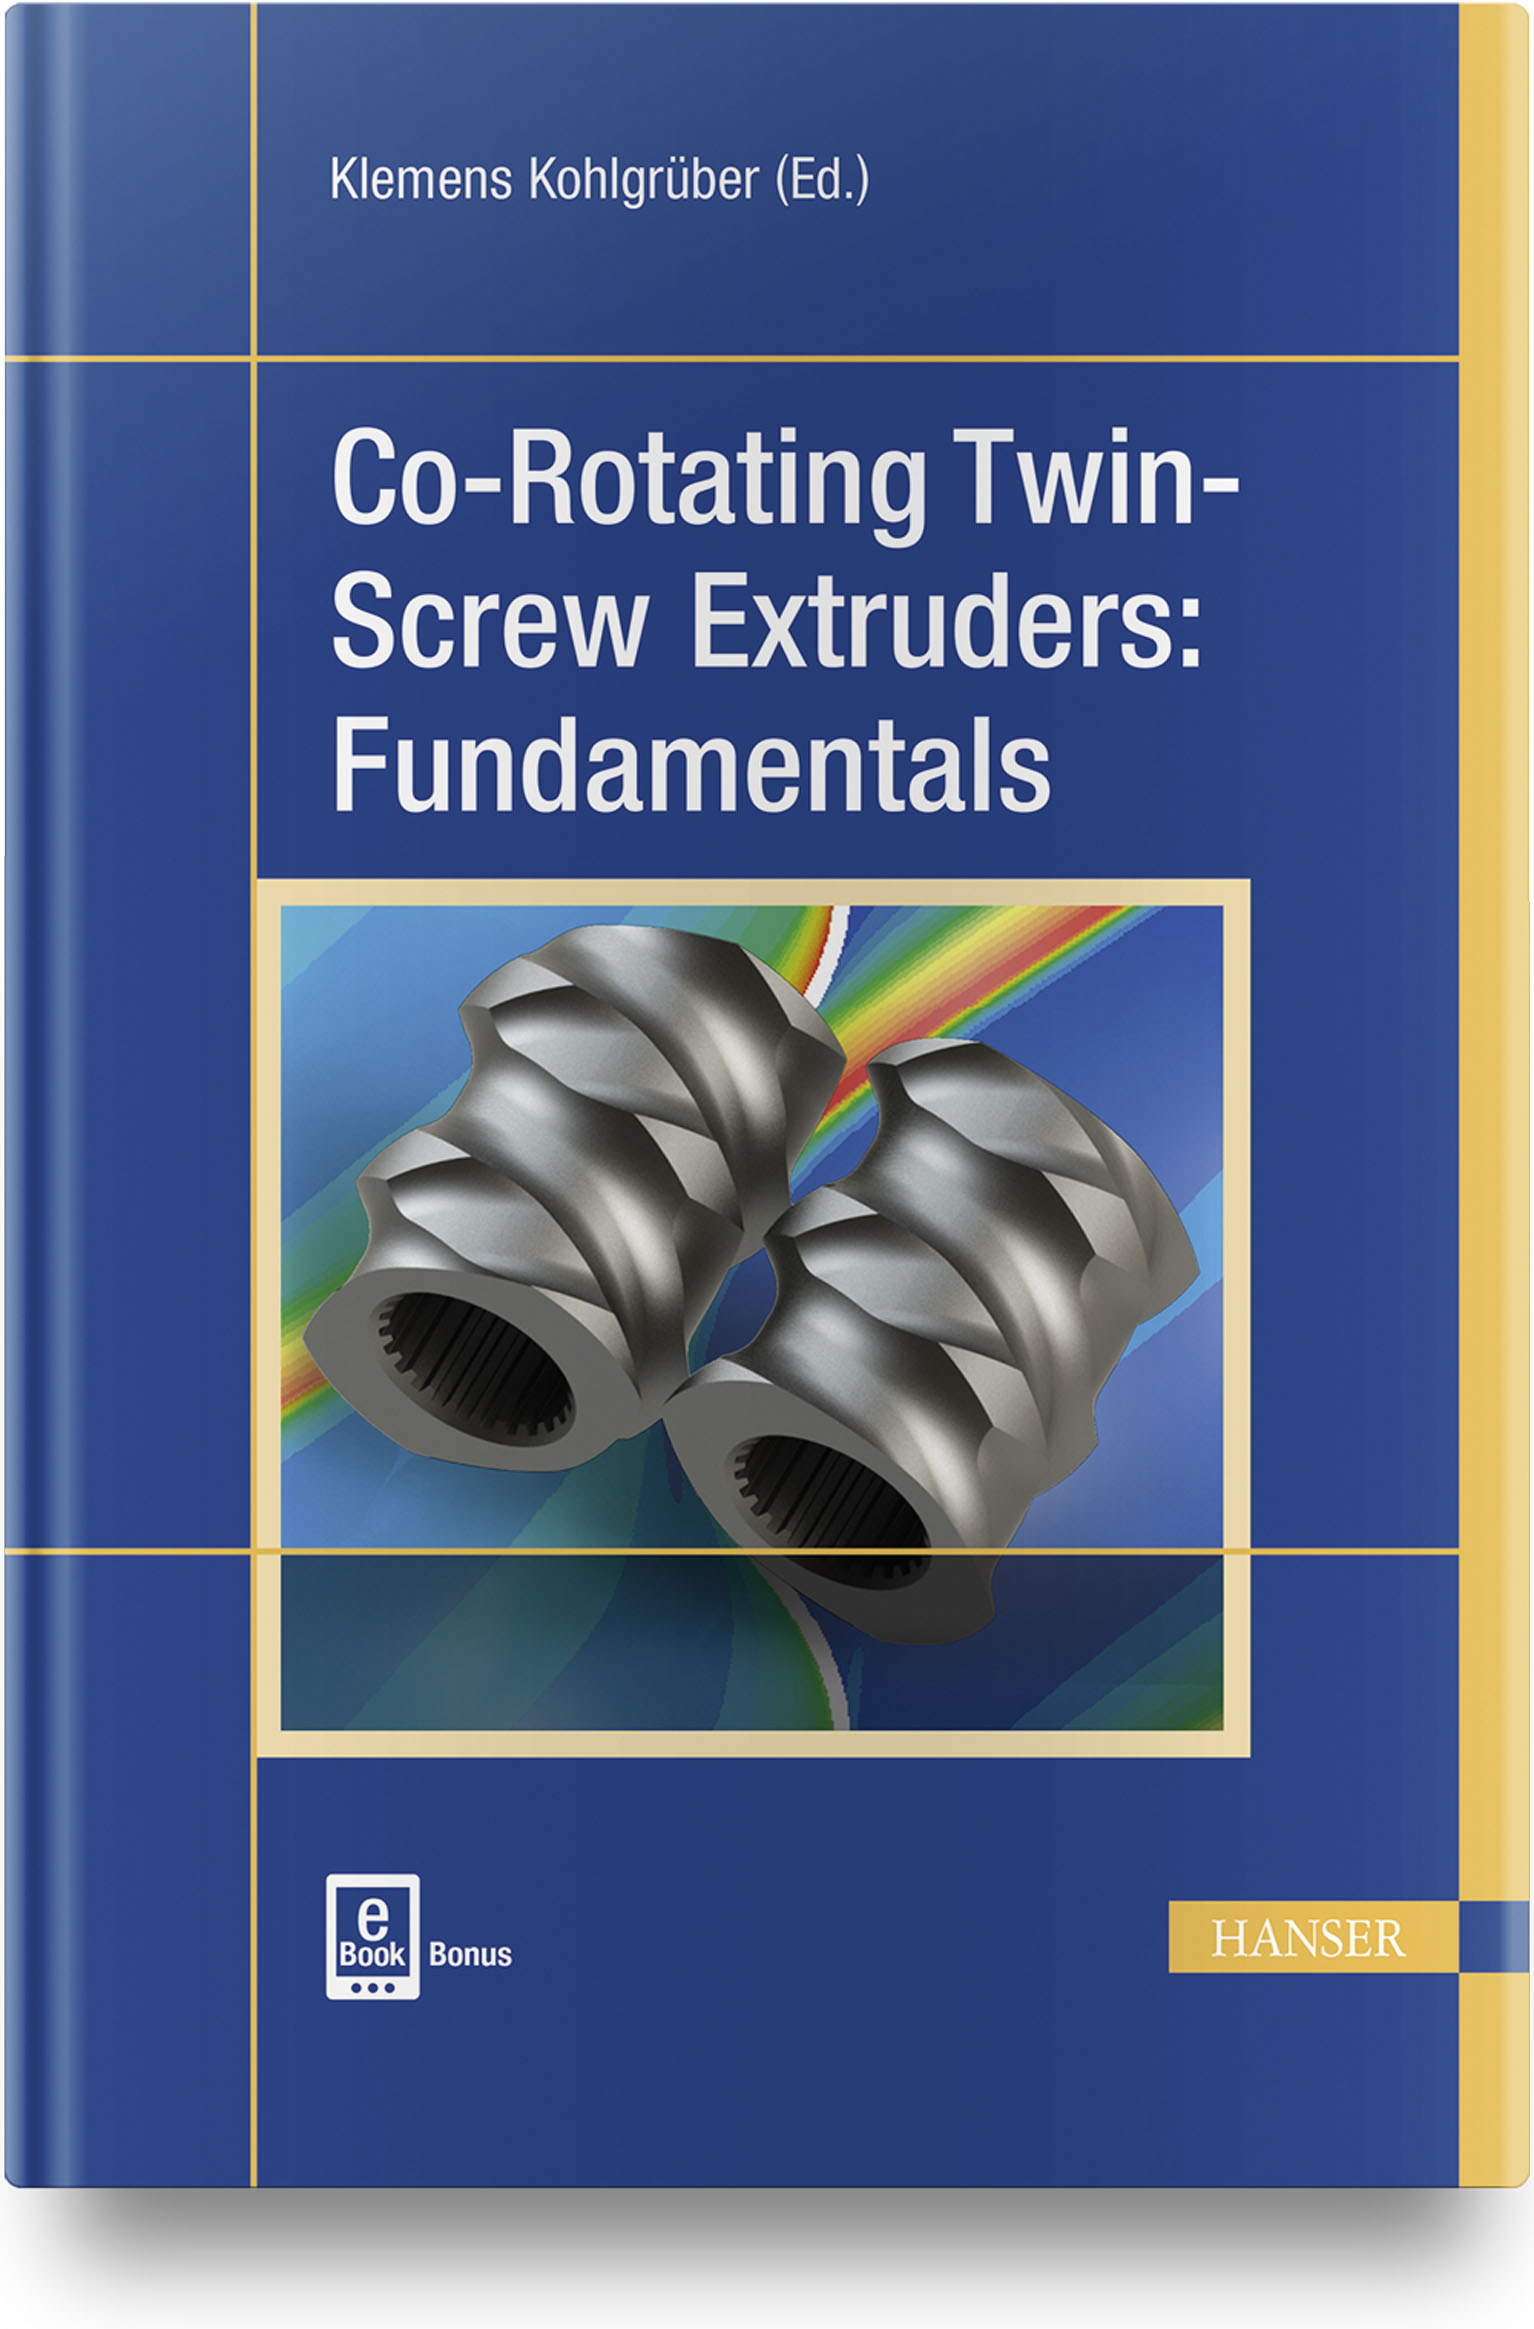 Co-Rotating Twin-Screw Extruders: Fundamentals, 978-1-56990-747-4